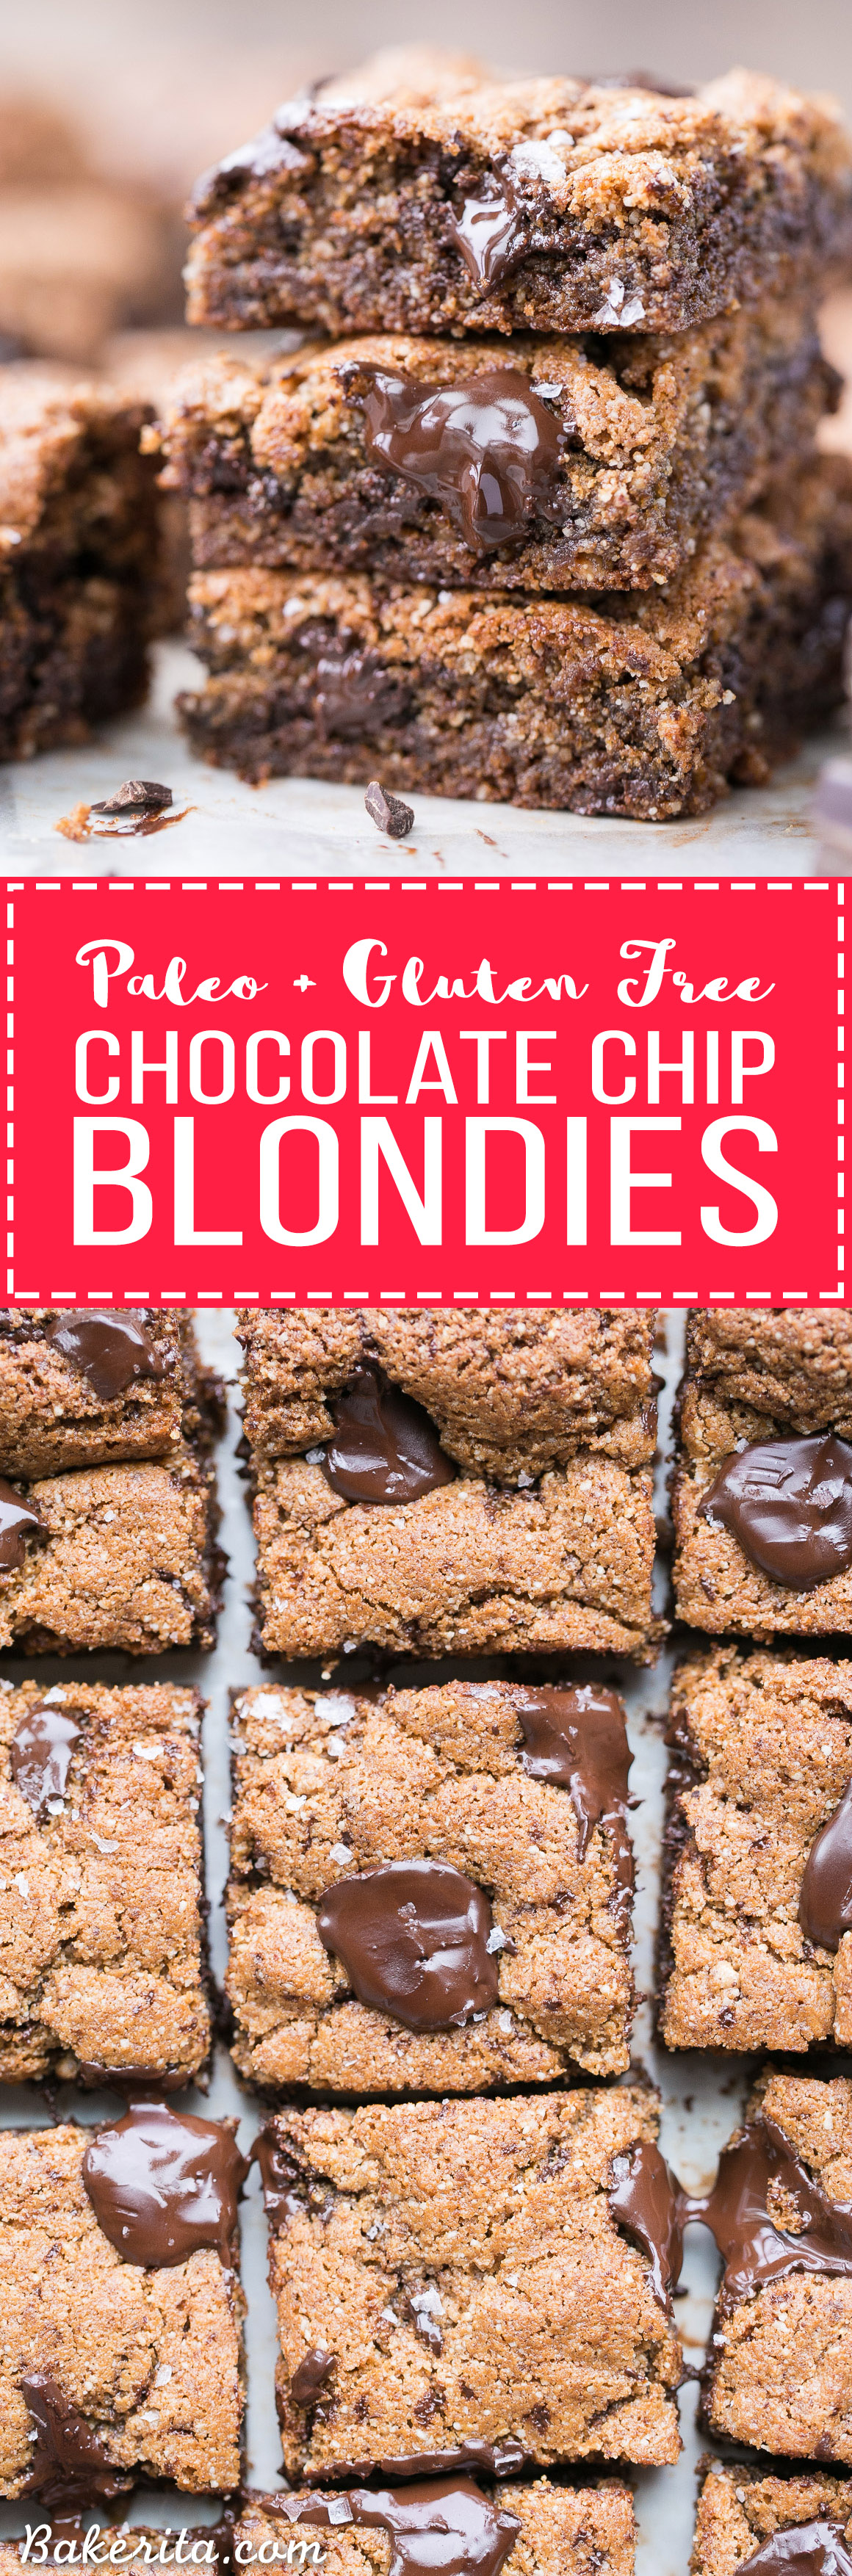 These Paleo Chocolate Chip Blondies have amazing crispy edges, a soft, chewy center and tons of dark, melted chocolate chunks! You'll go crazy for these paleo, gluten-free and refined sugar free blondies.